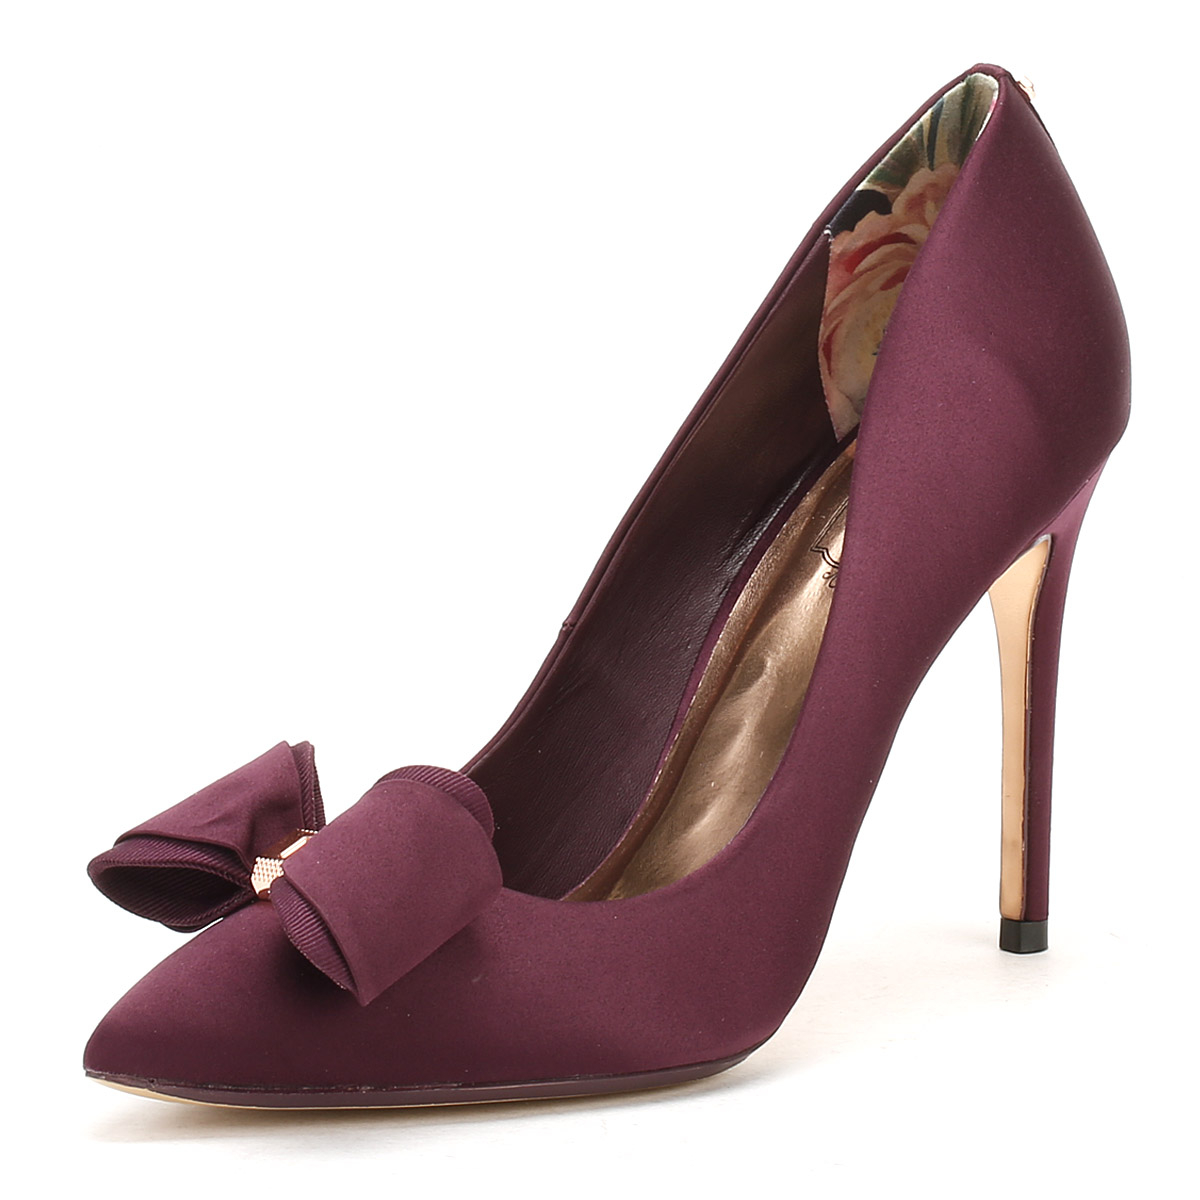 e8ae8274fa1ad8 Ted Baker Womens Purple Textile Azeline High Heels Stiletto Court Shoes